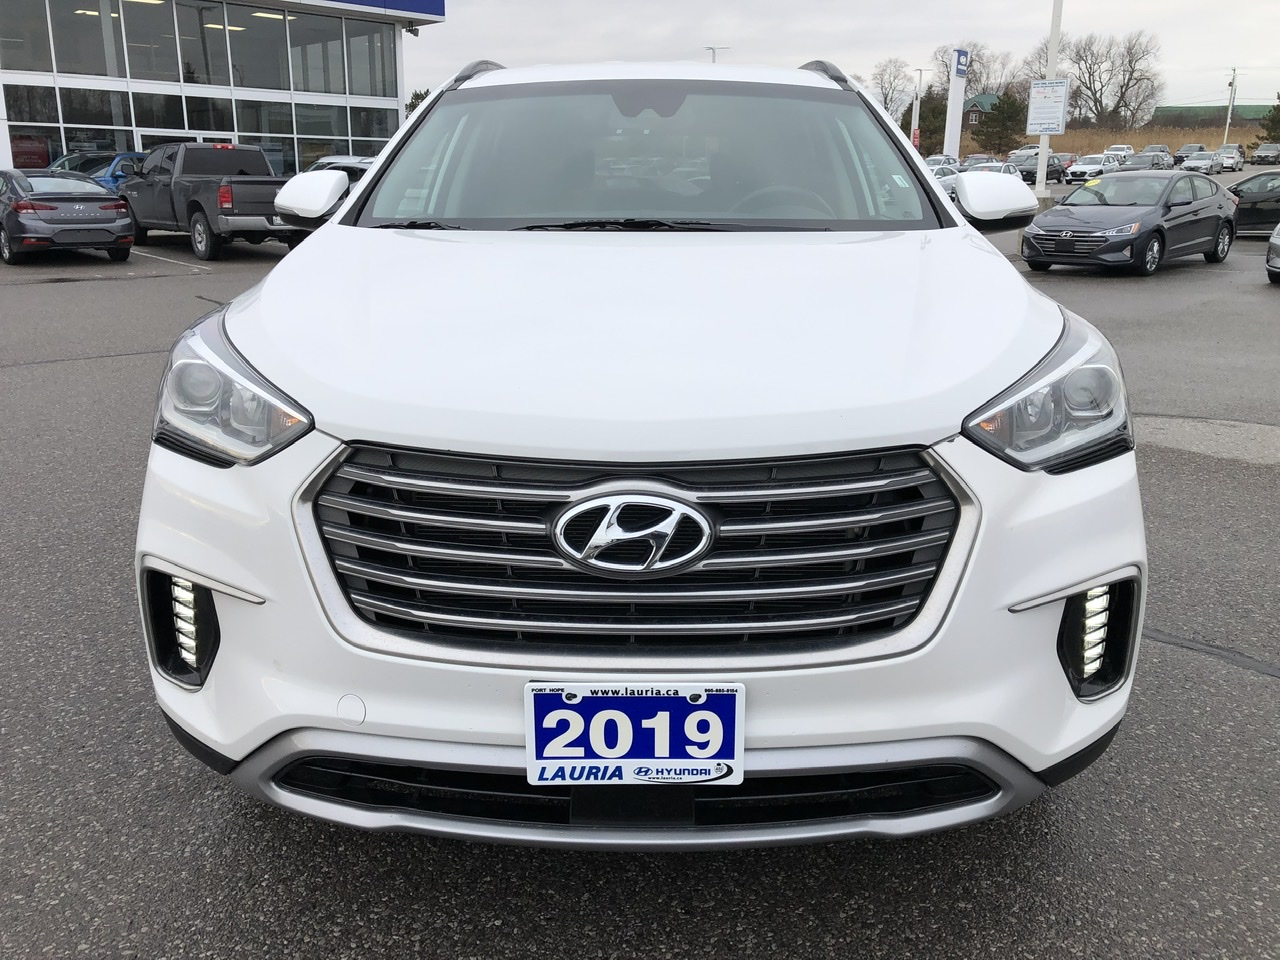 Certified Pre-Owned 2019 Hyundai Santa Fe XL V6 AWD Preferred 7-Passenger